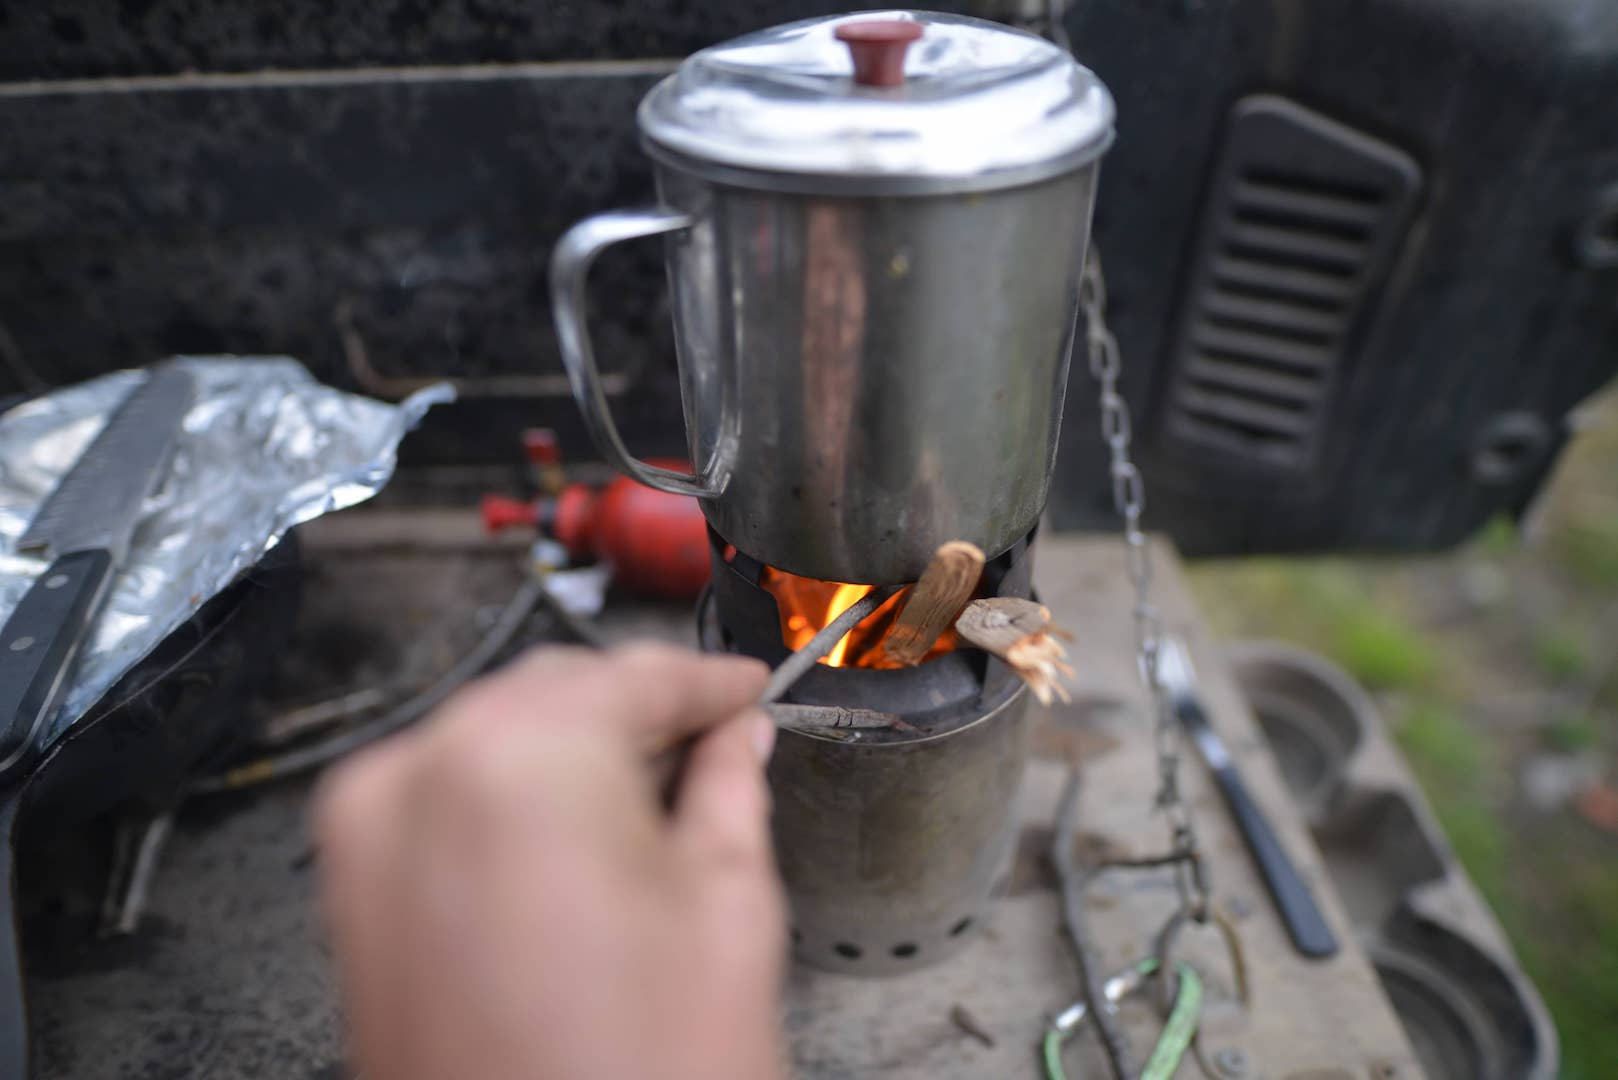 Car camping with solostove